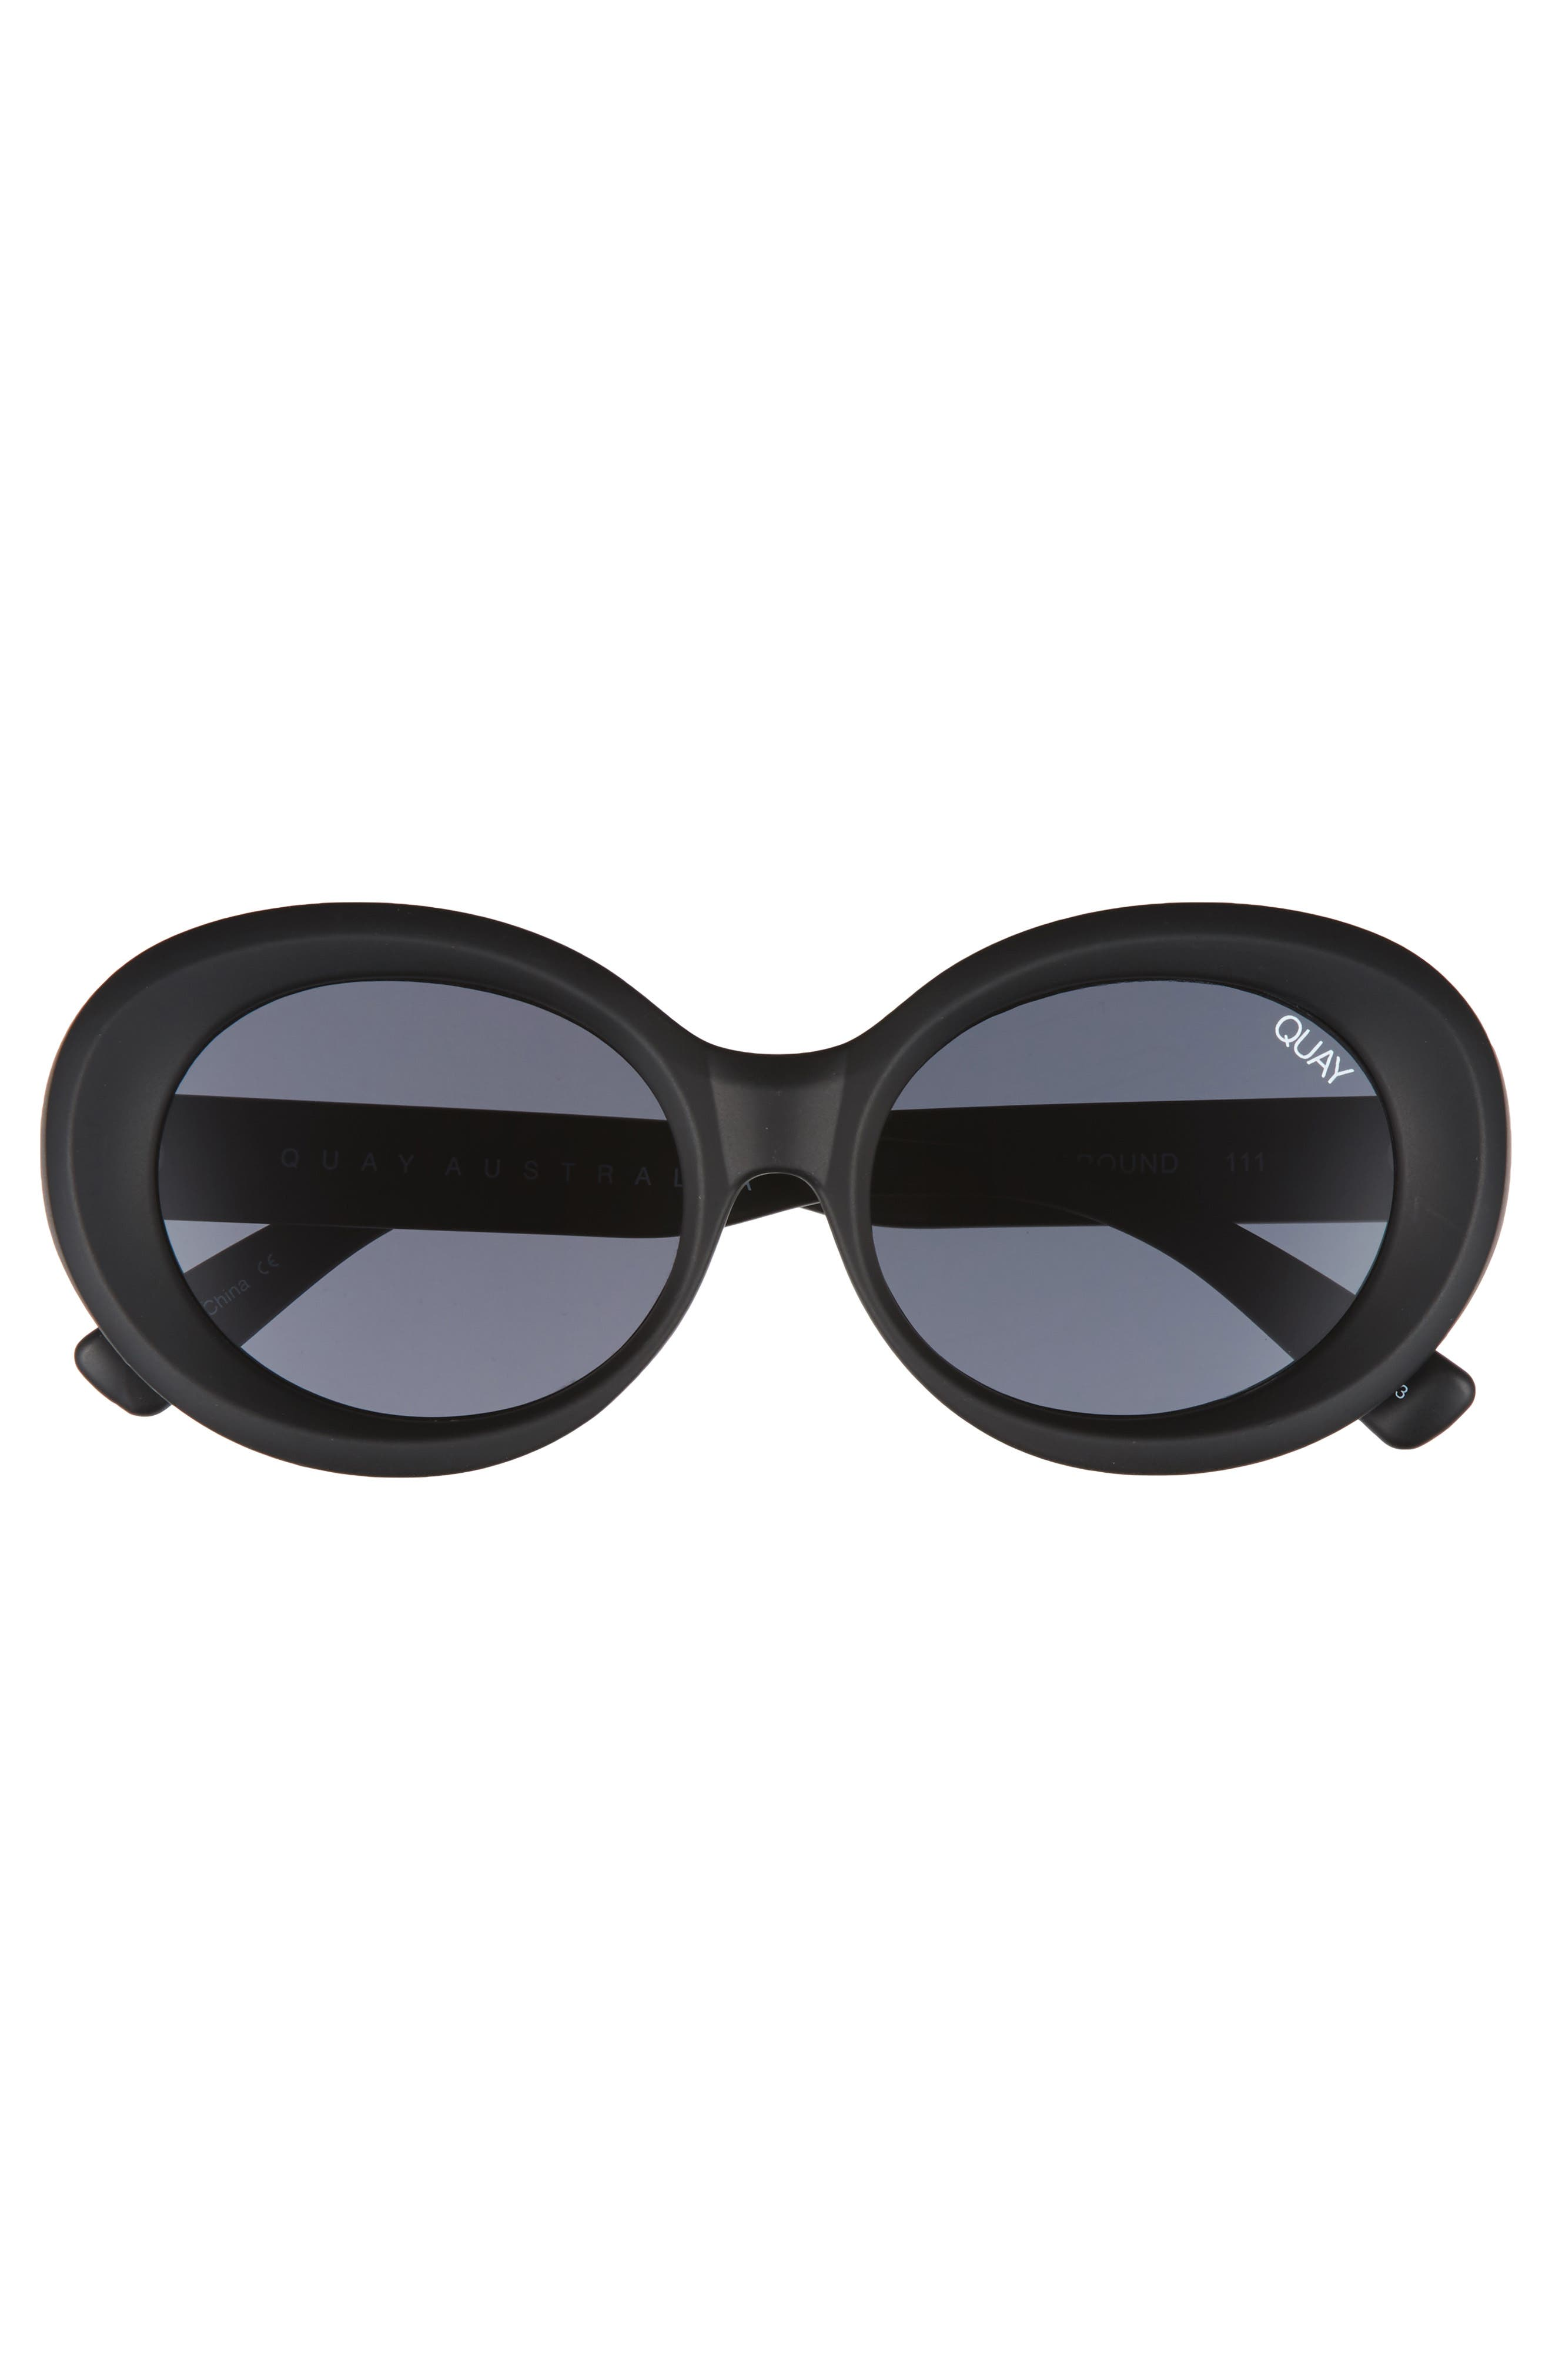 Mess Around 52mm Oval Sunglasses,                             Alternate thumbnail 3, color,                             001